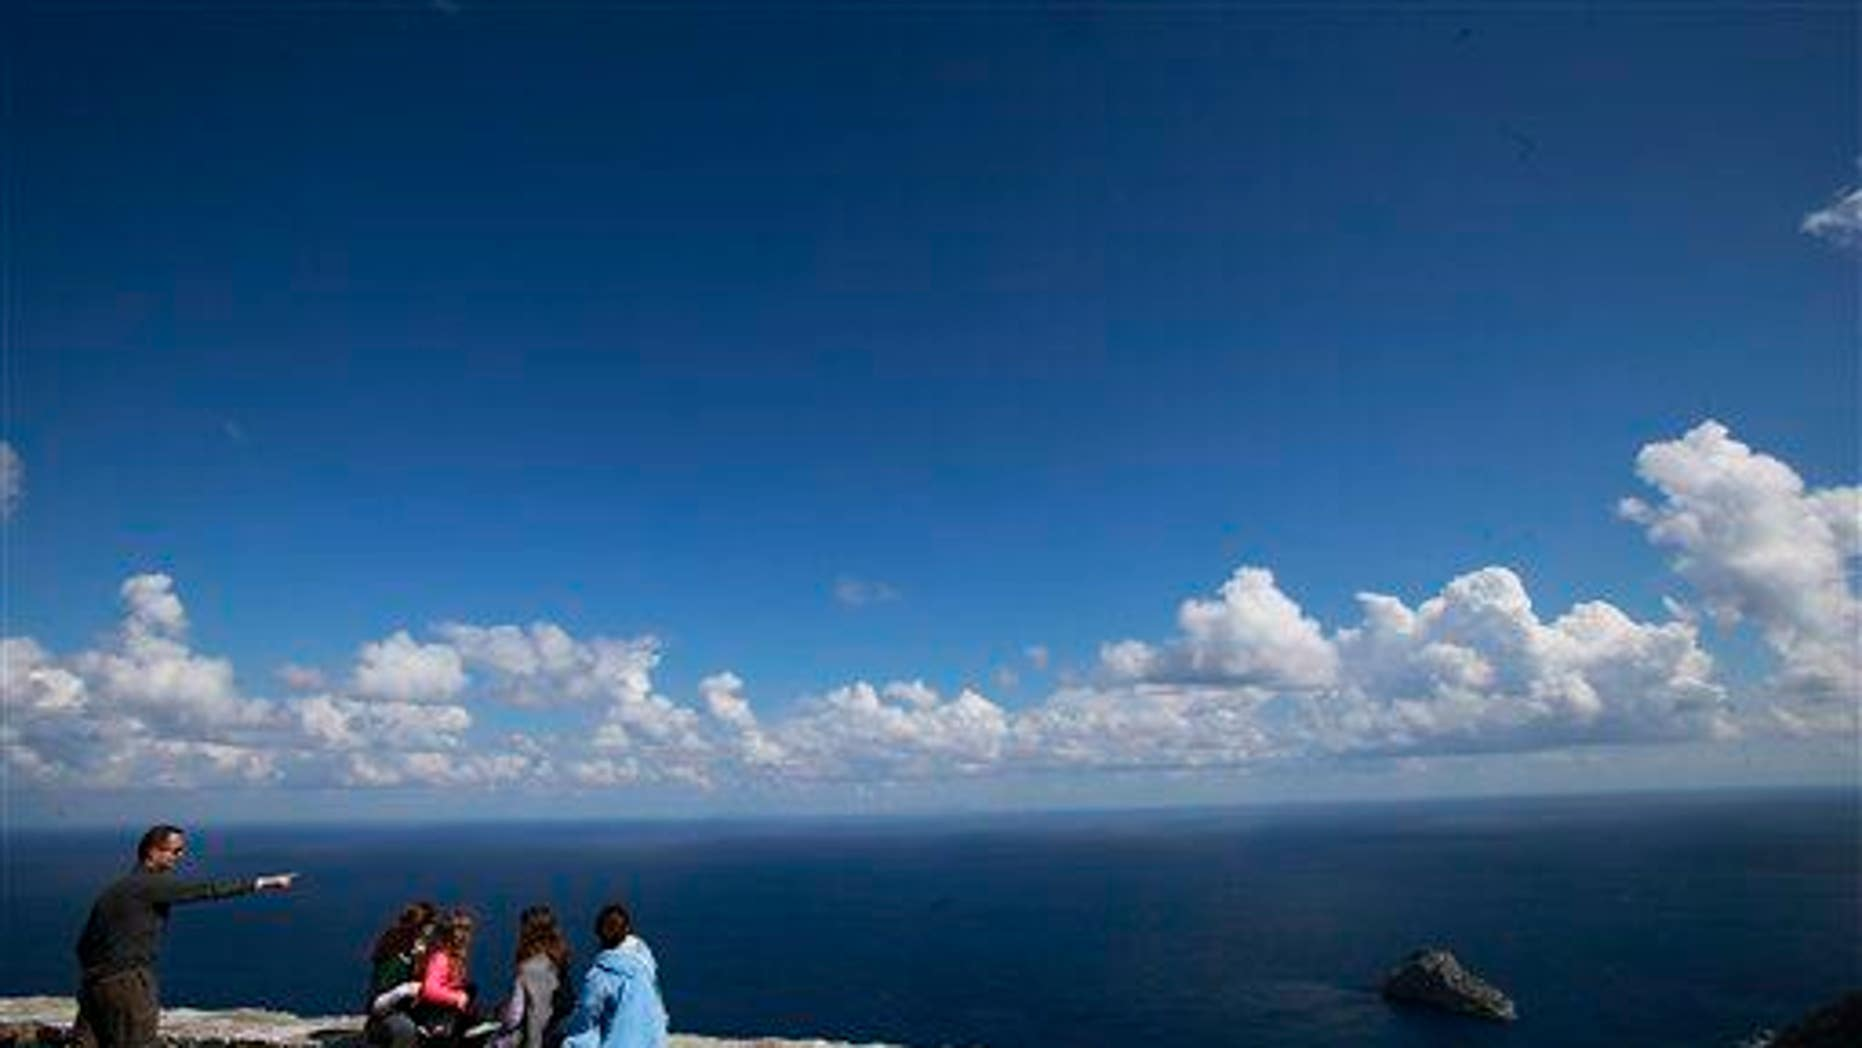 Tourists admire the Aegean, which is home to the island of Astypalaia.